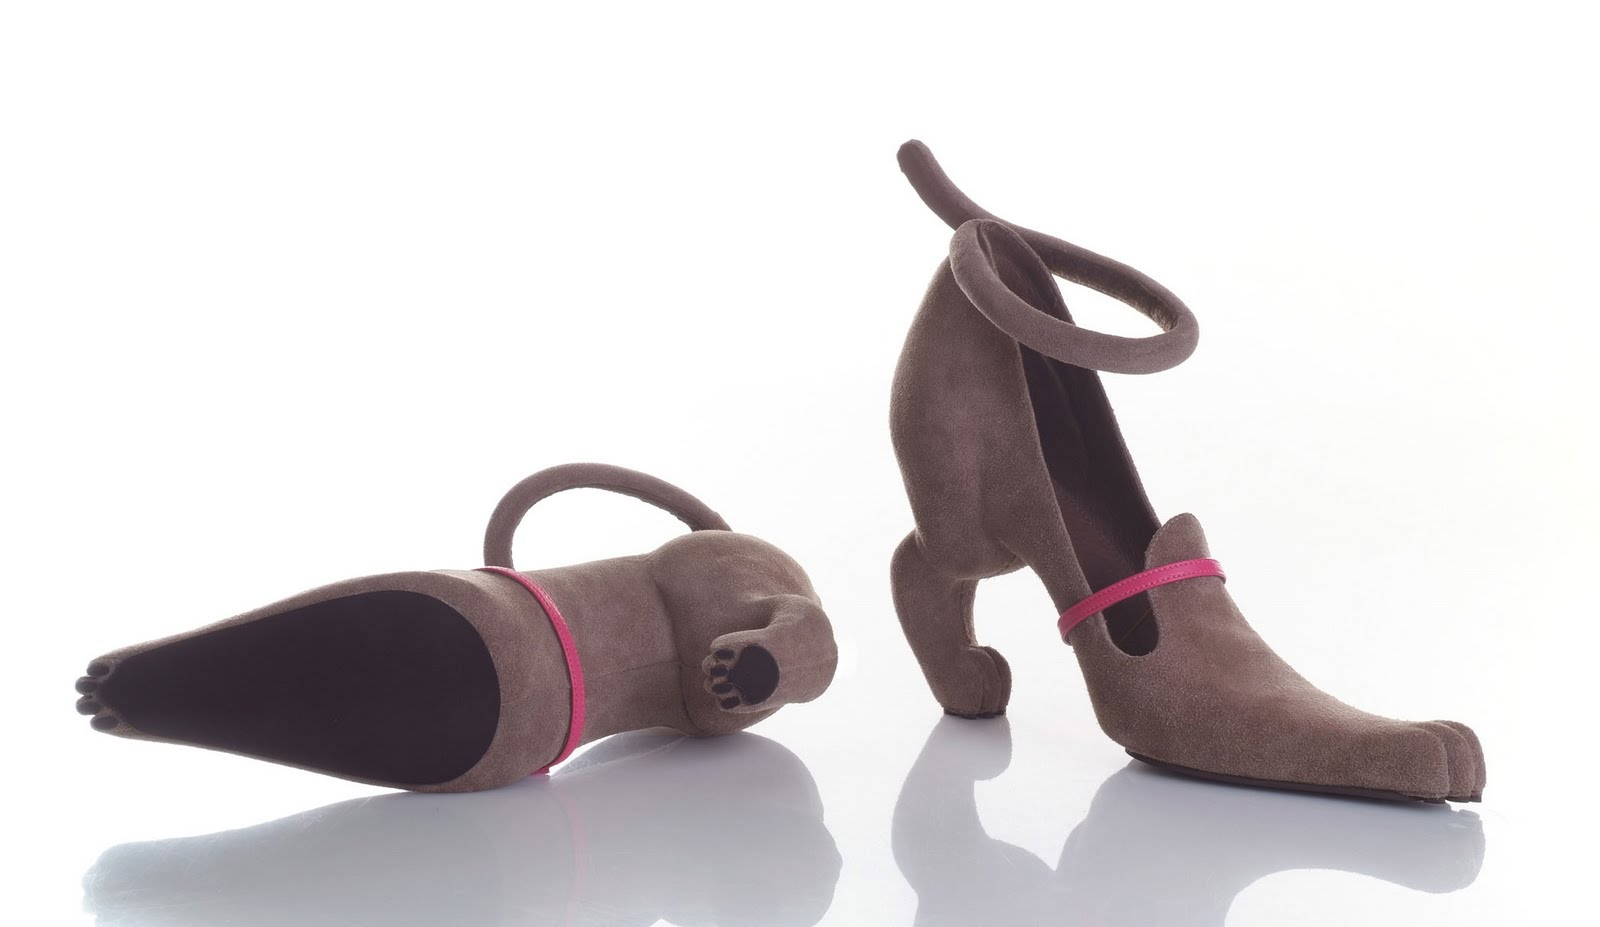 miao61 Artistic Footwear Designs by Kobi Levi